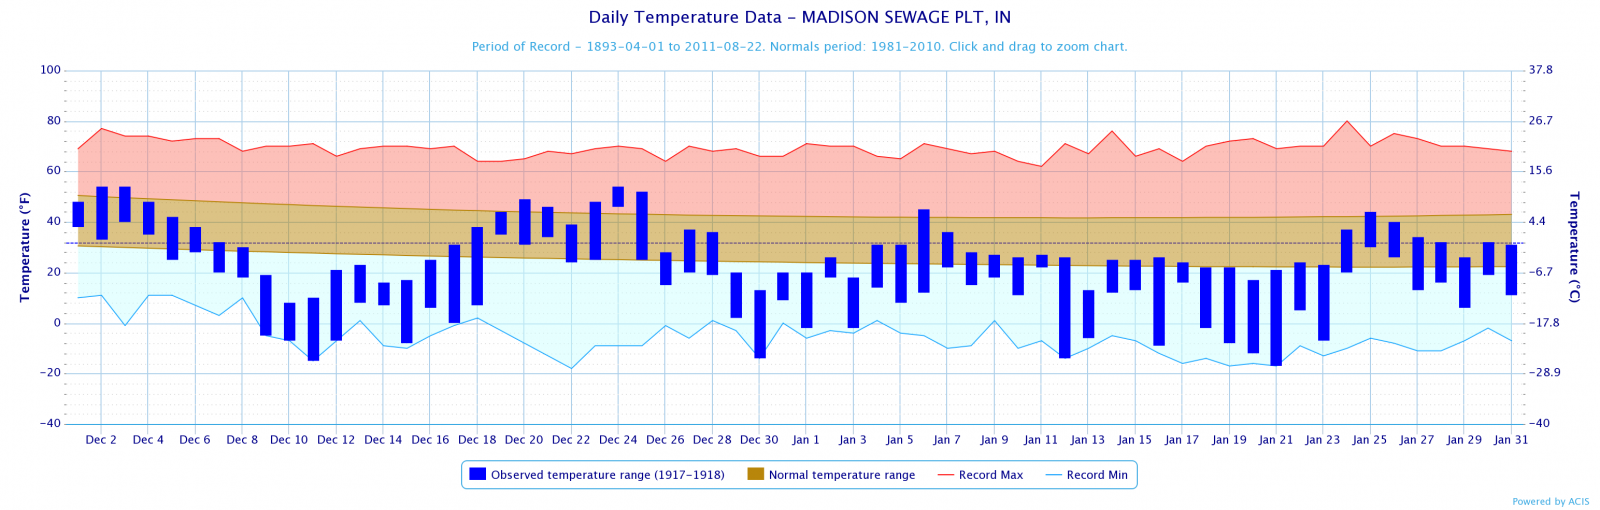 Temperature Plot for Madison, December 1917-January 1918